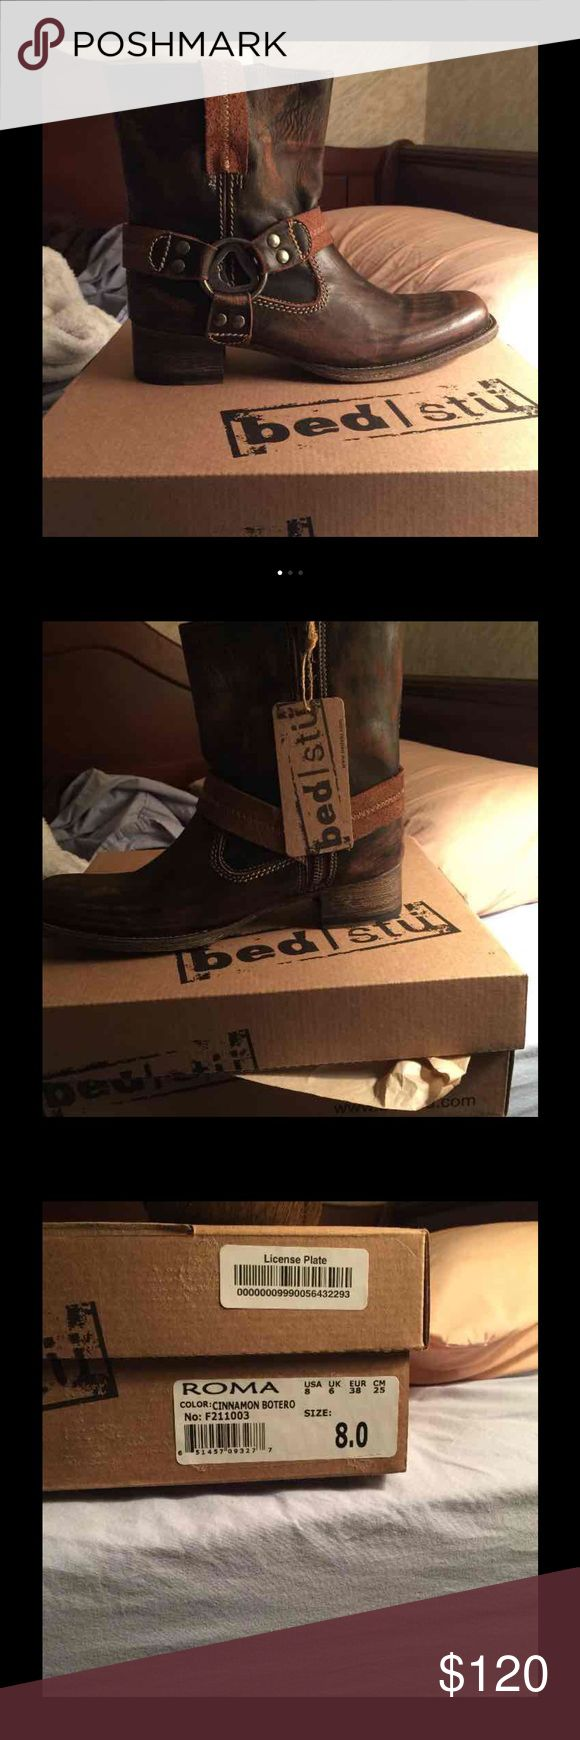 Bed stu Roma boots Bedstu bed stu Roma boots brand new in box with stuffing still inside. Bought online and had to get a bigger size. Just looking to make my money back so don't lowball please Bed Stu Shoes Ankle Boots & Booties